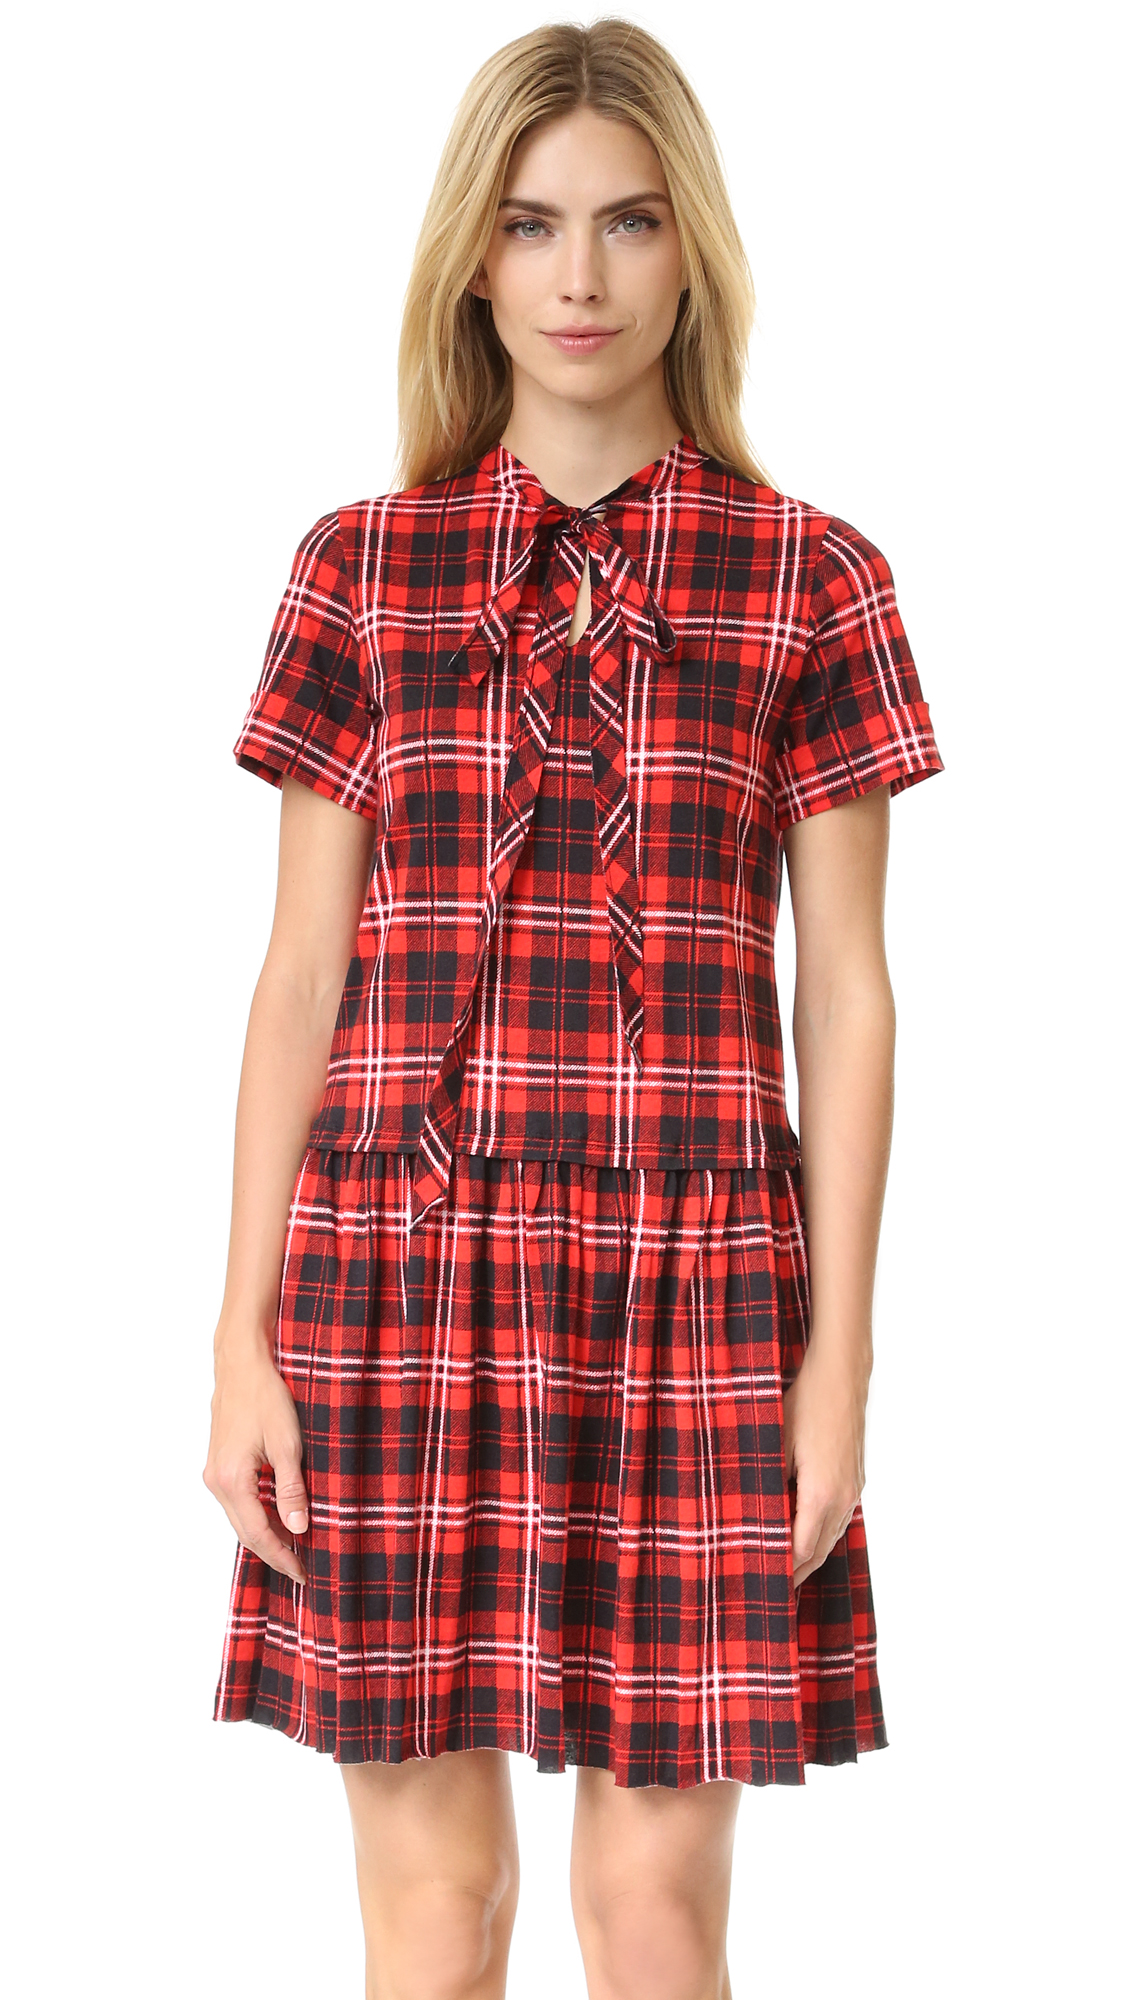 marc jacobs female 250960 marc jacobs 34 sleeve knit dress red plaid